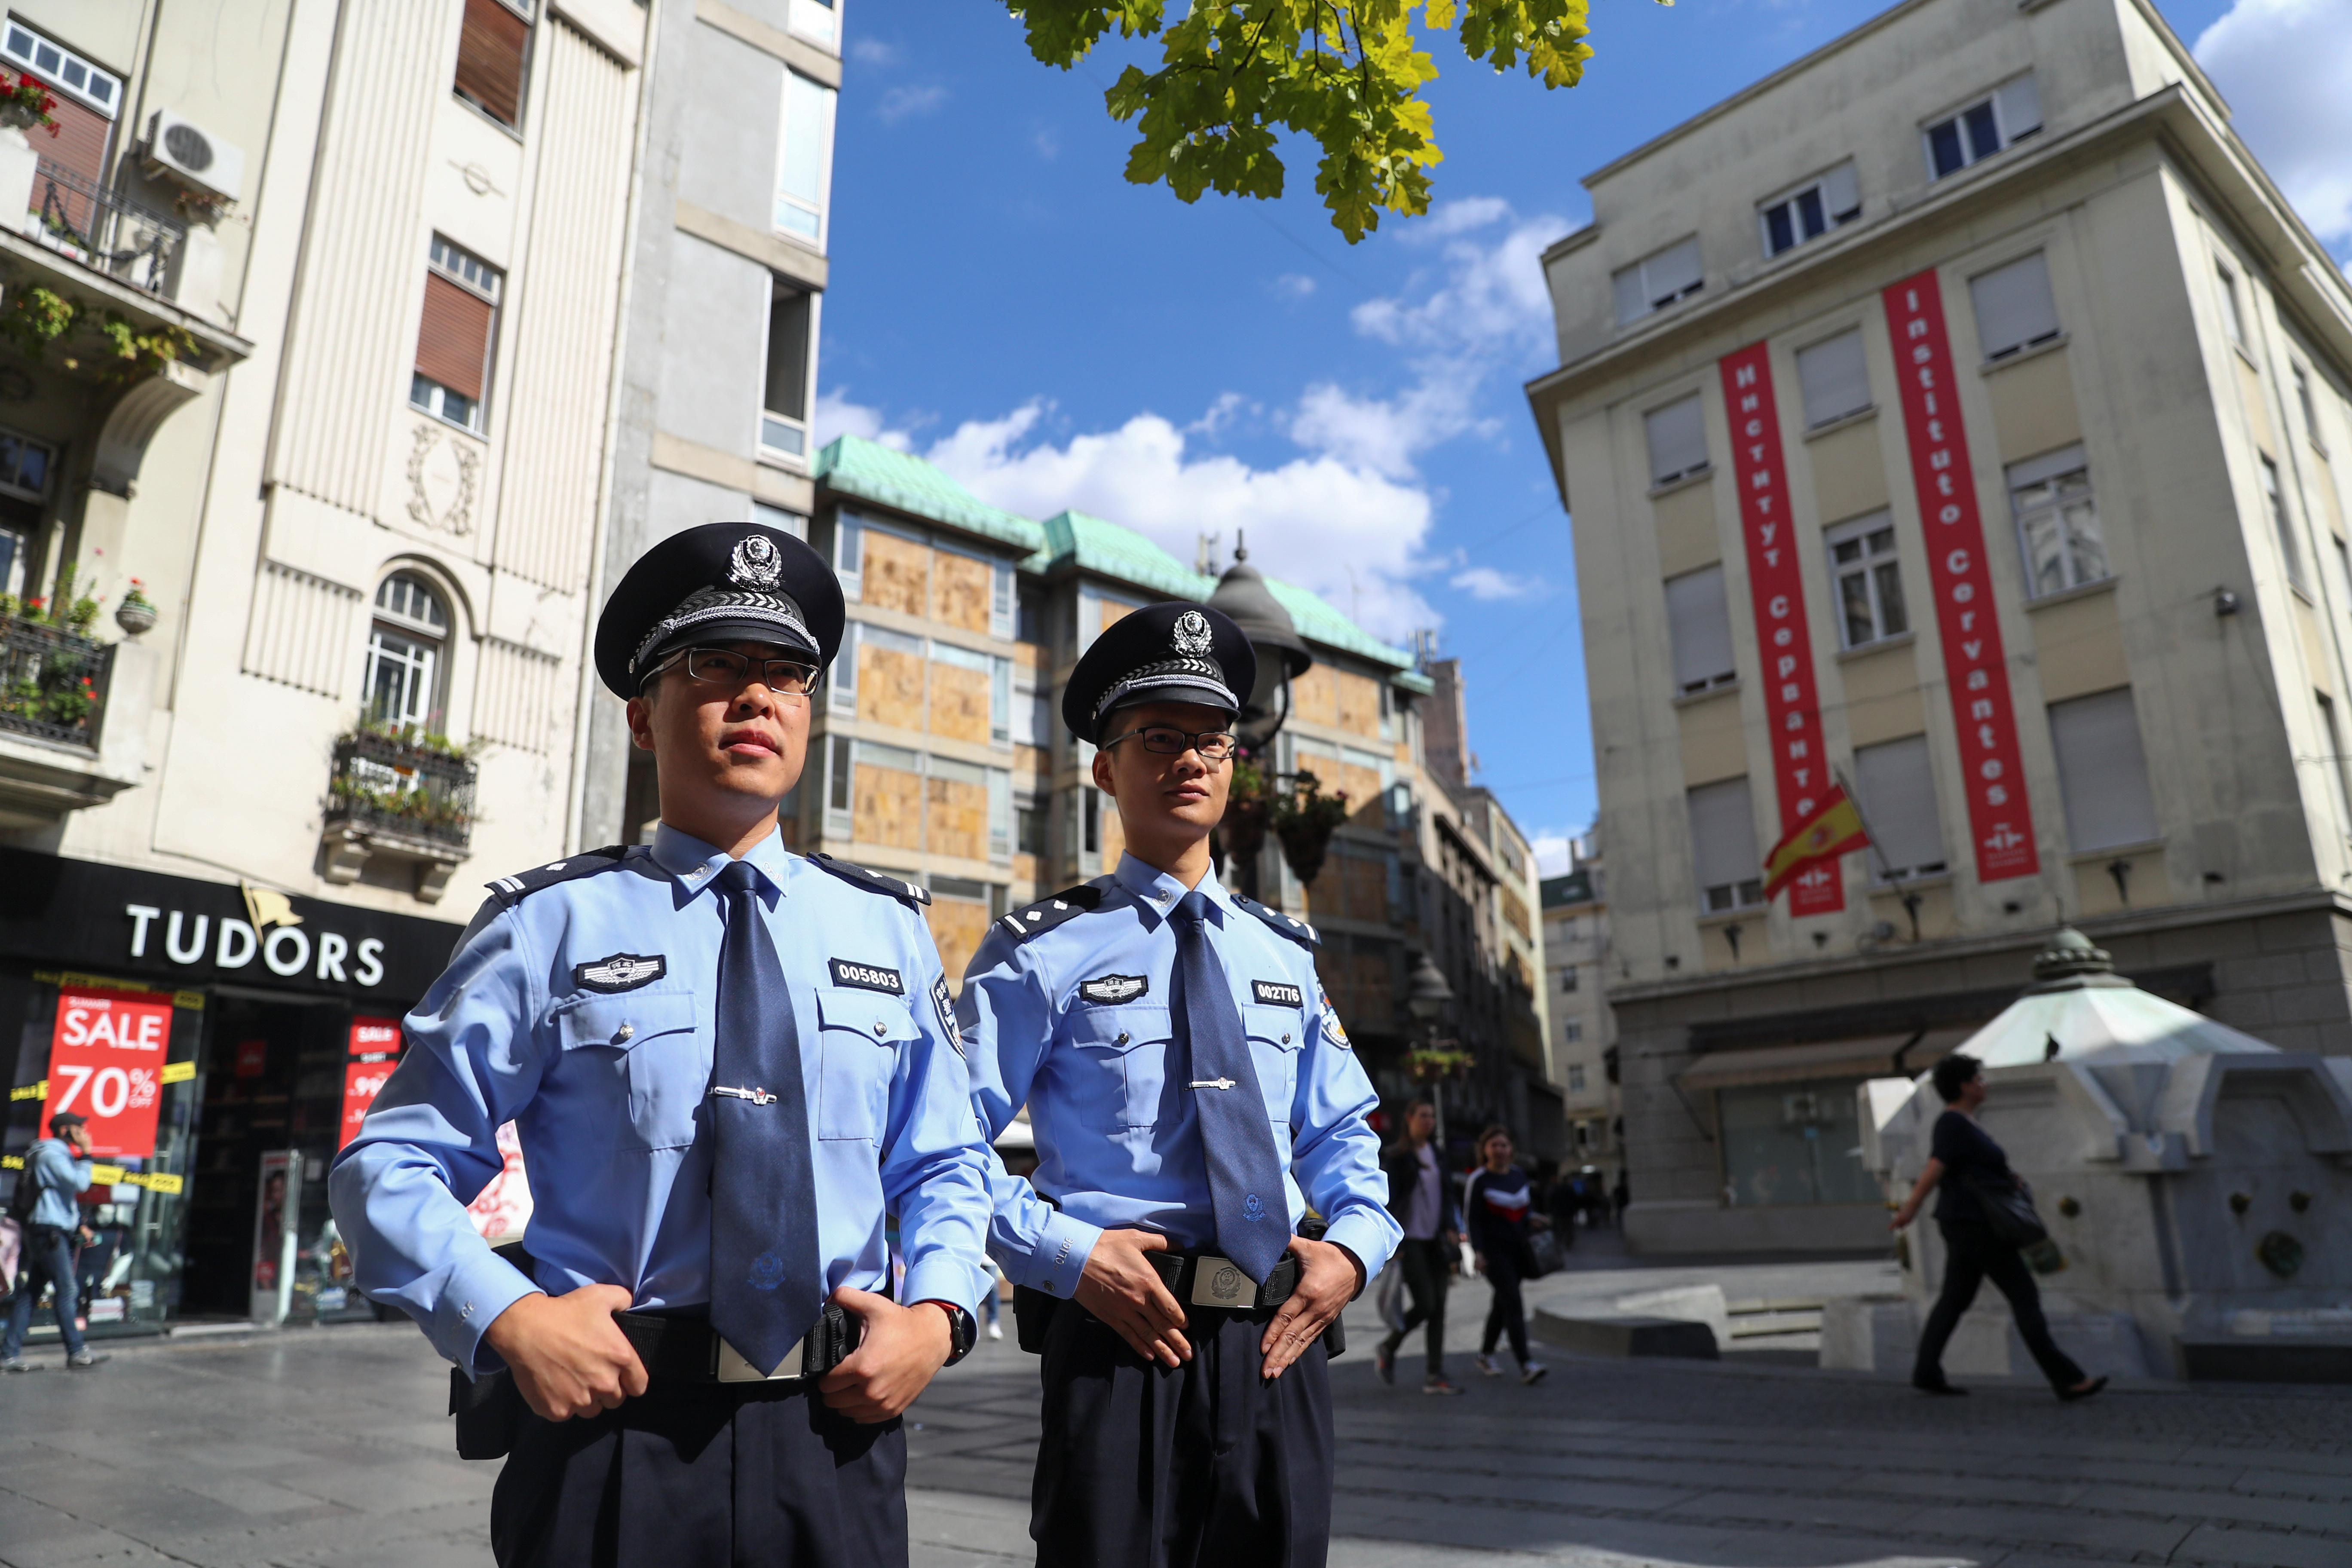 Chinese police officers join Serbian colleagues on the beat in...